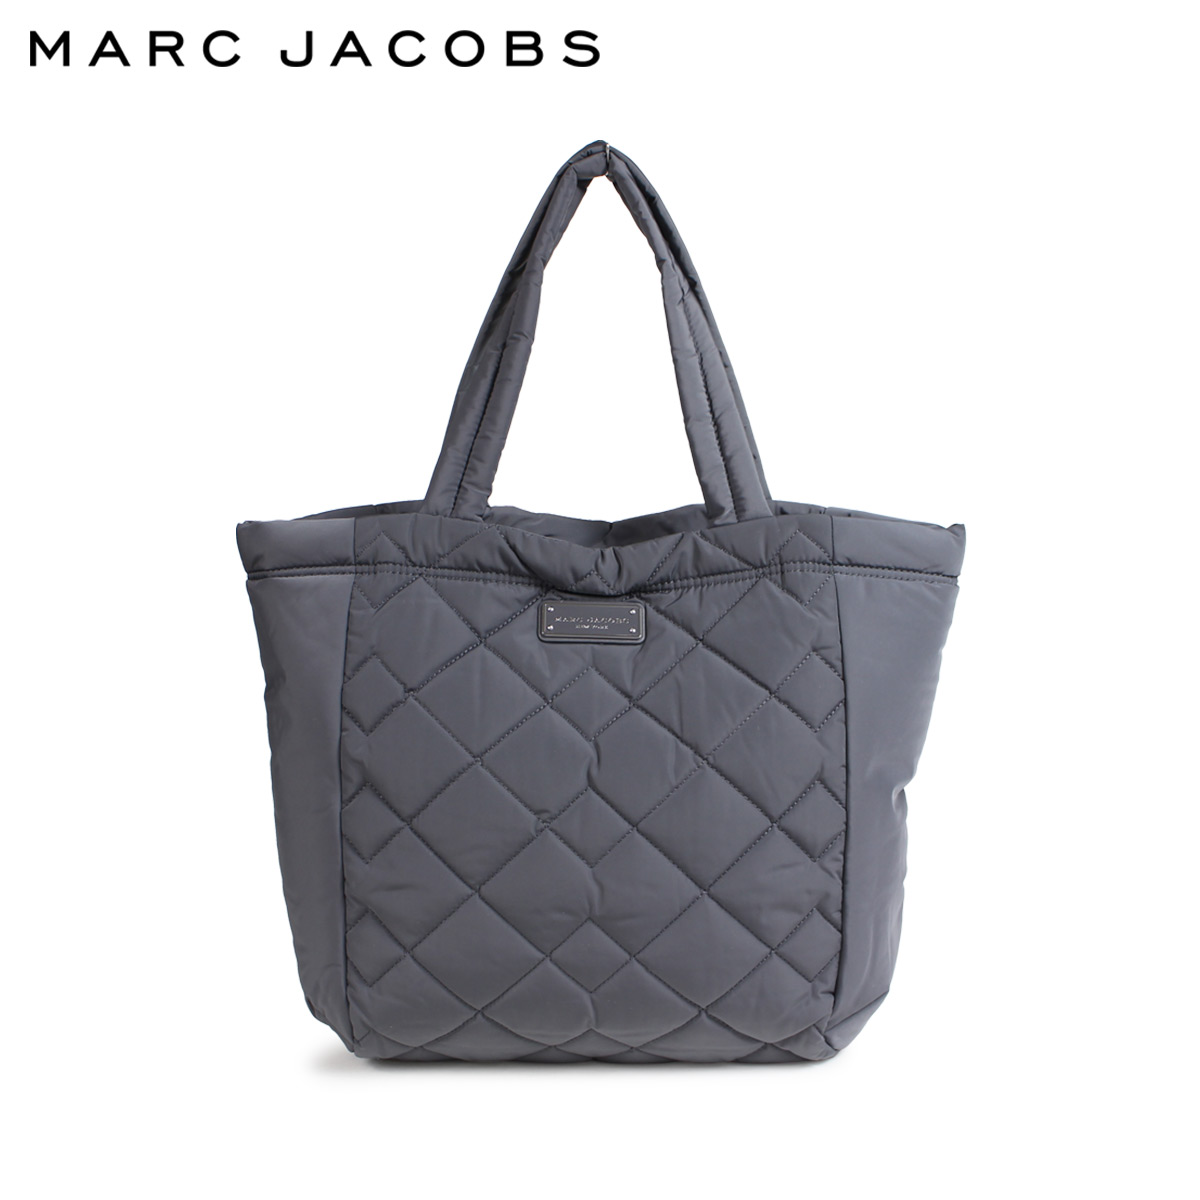 MARC JACOBS QUILTED TOTE マークジェイコブス トートバッグ バッグ マザーズバッグ レディース ダークグレー M0011322